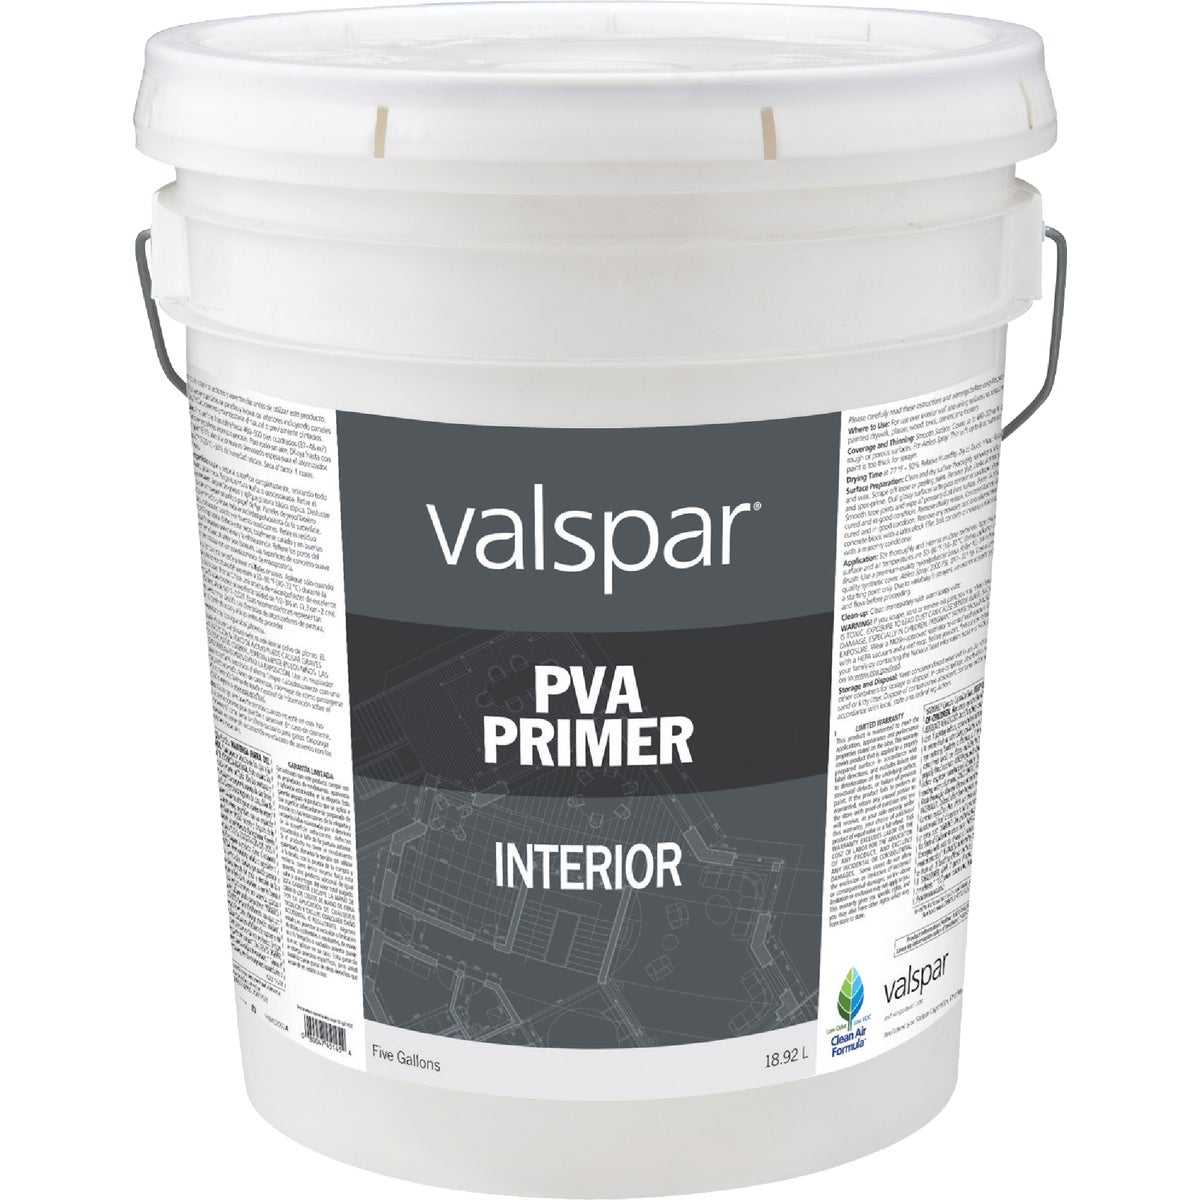 INT LATEX WHT PVA PRIMER - 045.0011288.008 by Valspar Corp